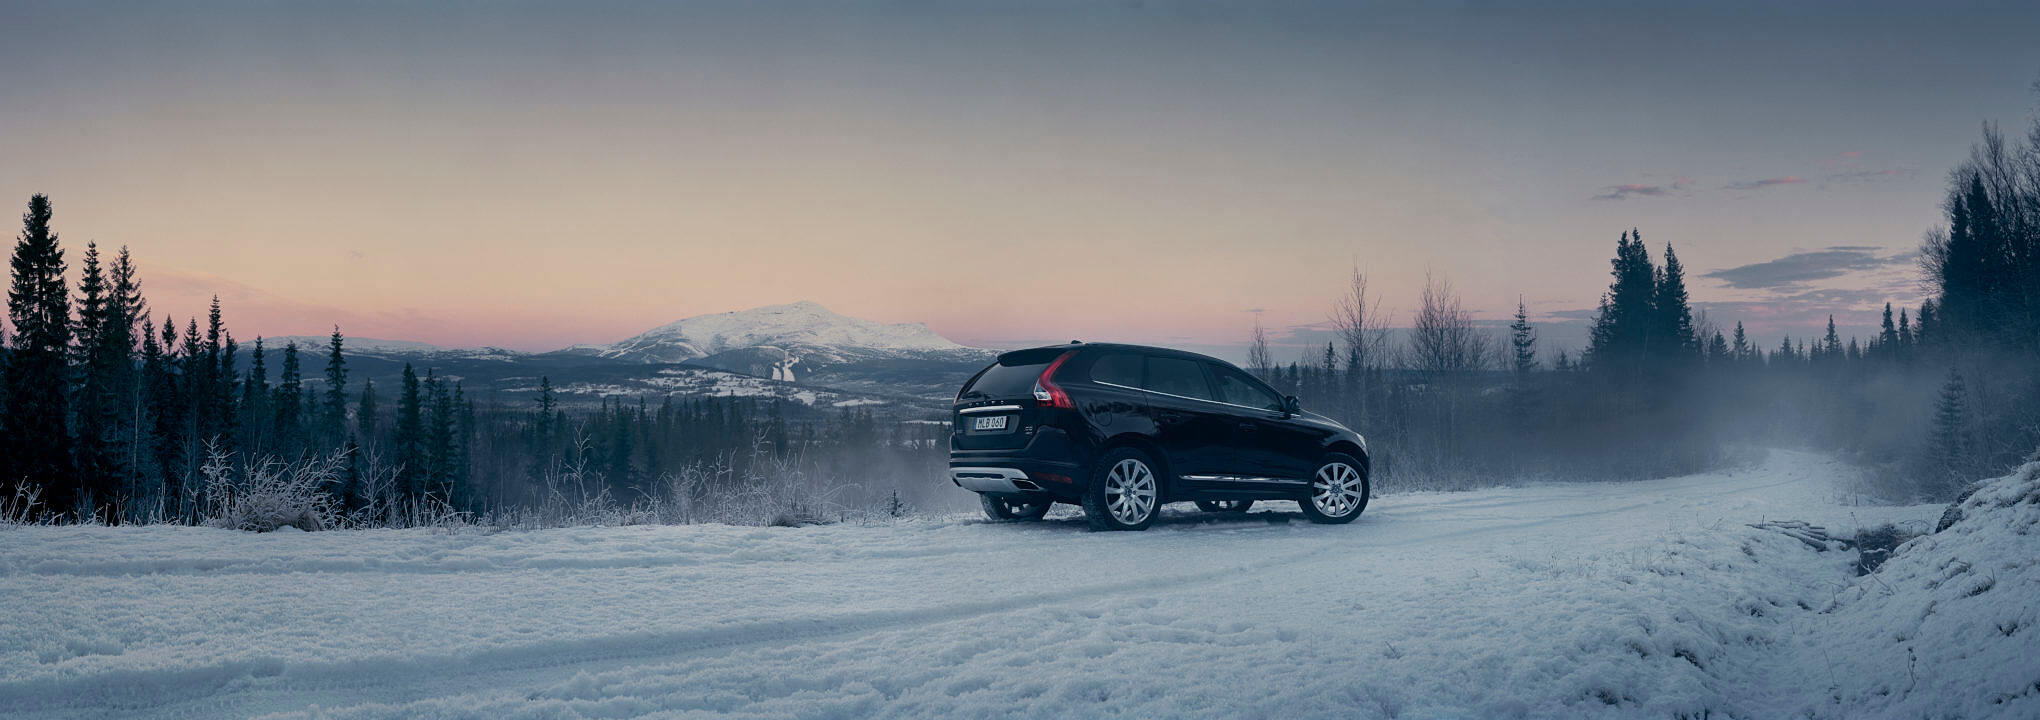 Volvo Made By Sweden Jämtland